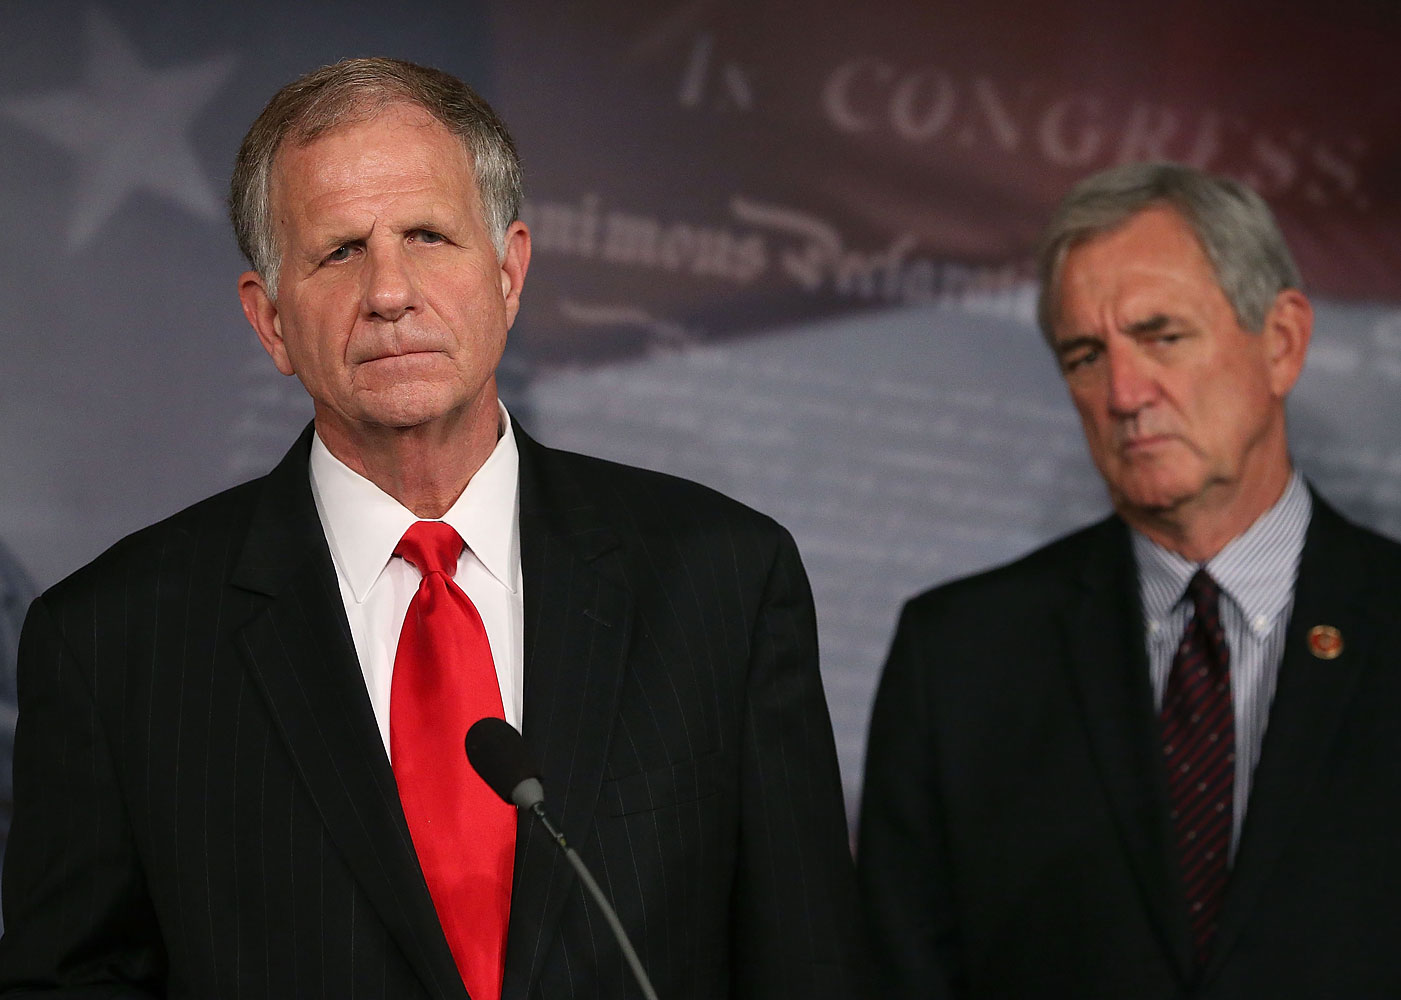 Ted Poe (R-TX) (L) and U.S. Rep.  Rick Nolan (D-MN) participate in a news conference on the sex slave industry, on Capitol Hill, August 1, 2013 in Washington, DC.